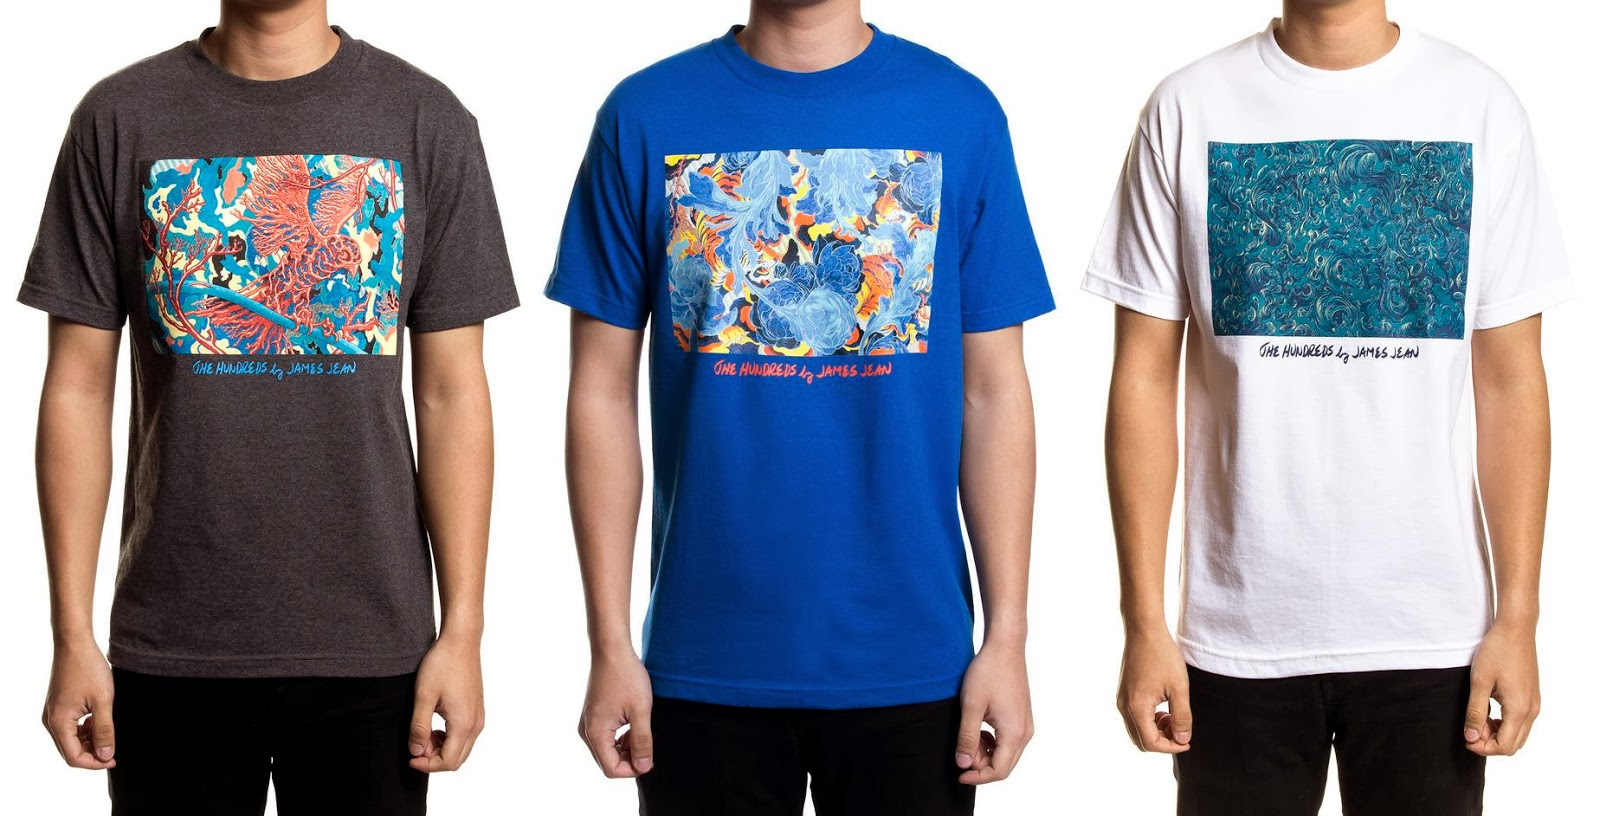 buy online 578a9 5cf94 The Hundreds by James Jean T-Shirt Collection